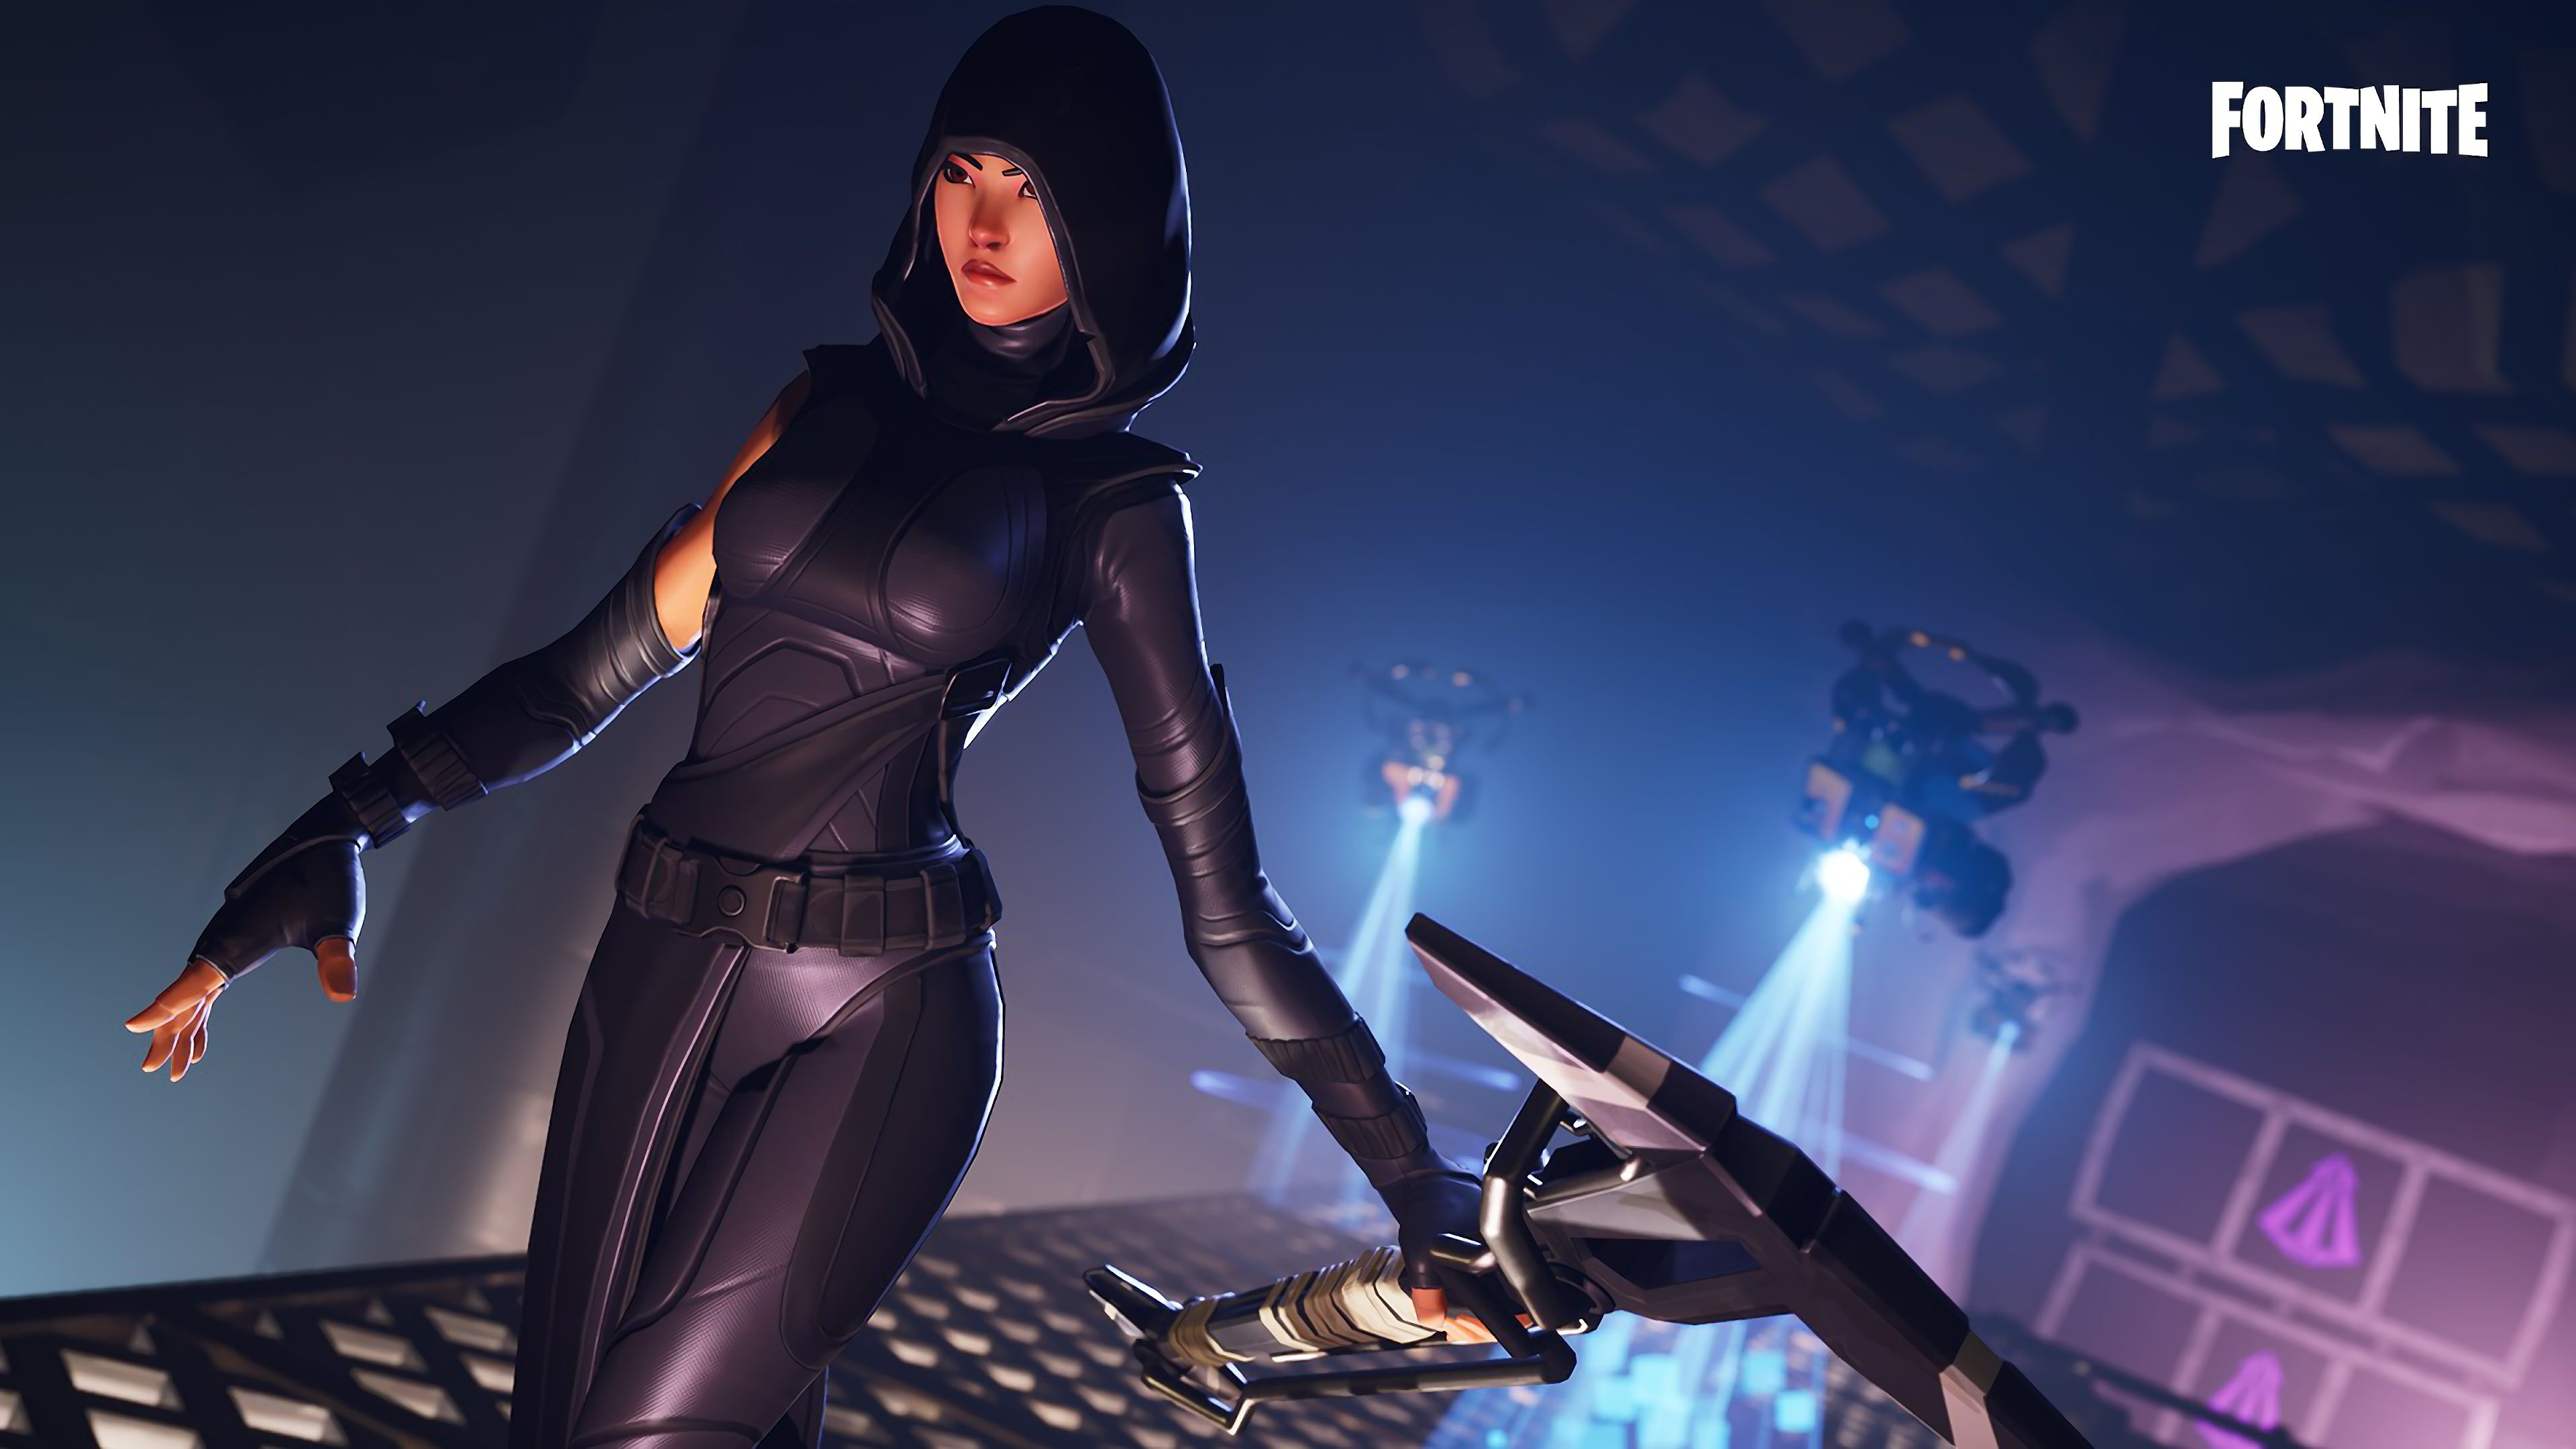 Pin by BlueGalaxy on Fortnite | Fortnite, Fate, Screen ...